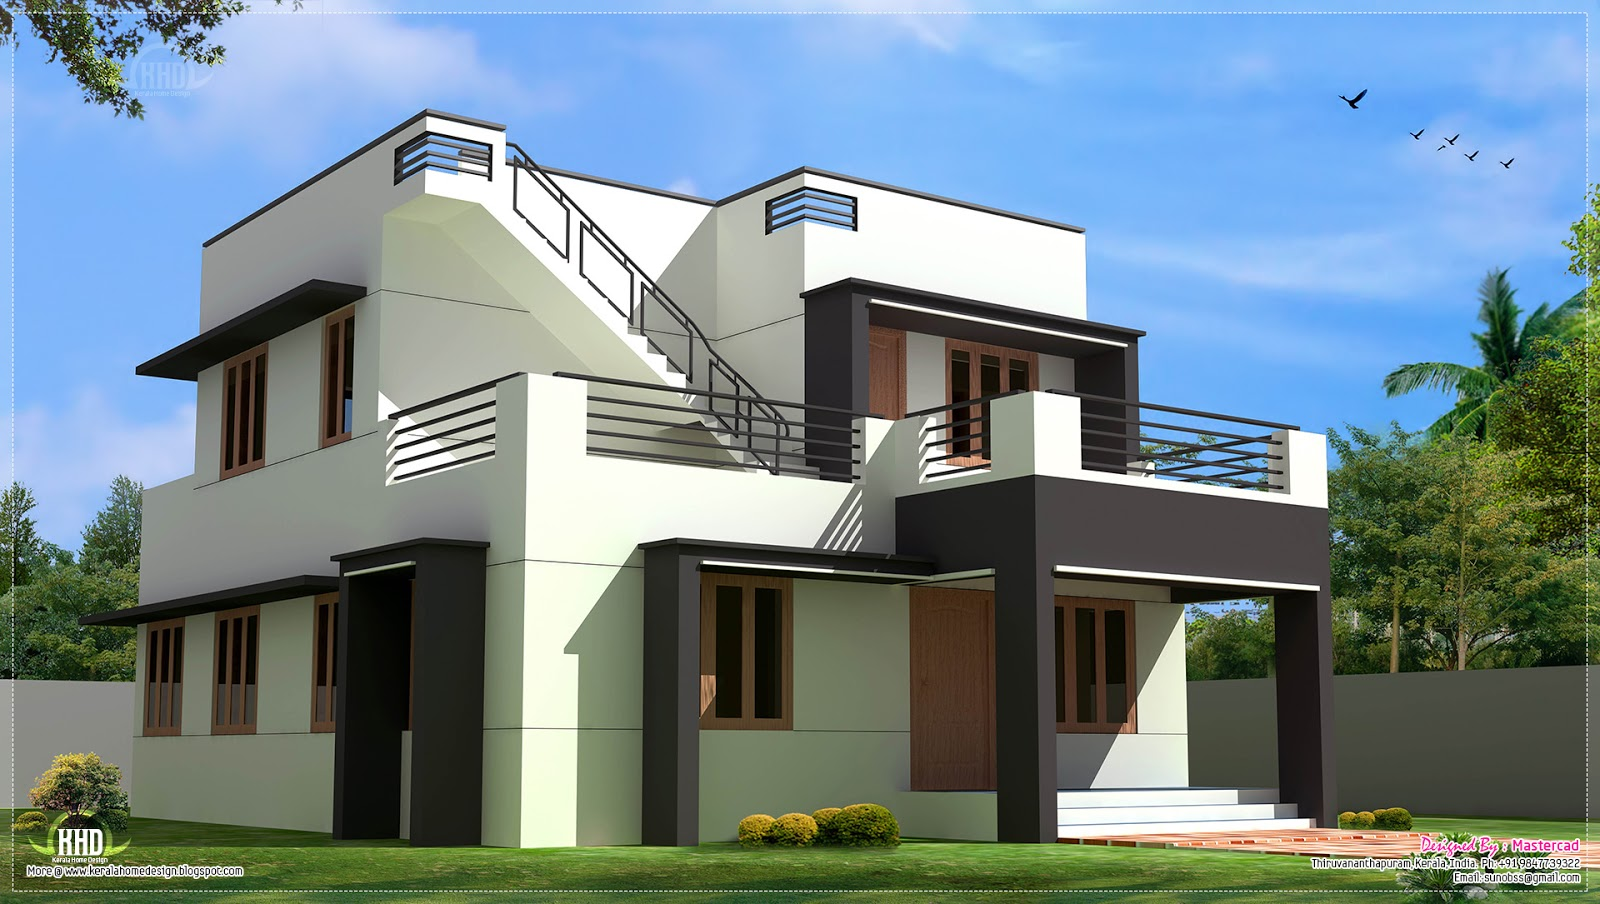 Modern house design in 1700 kerala home design for House floor design